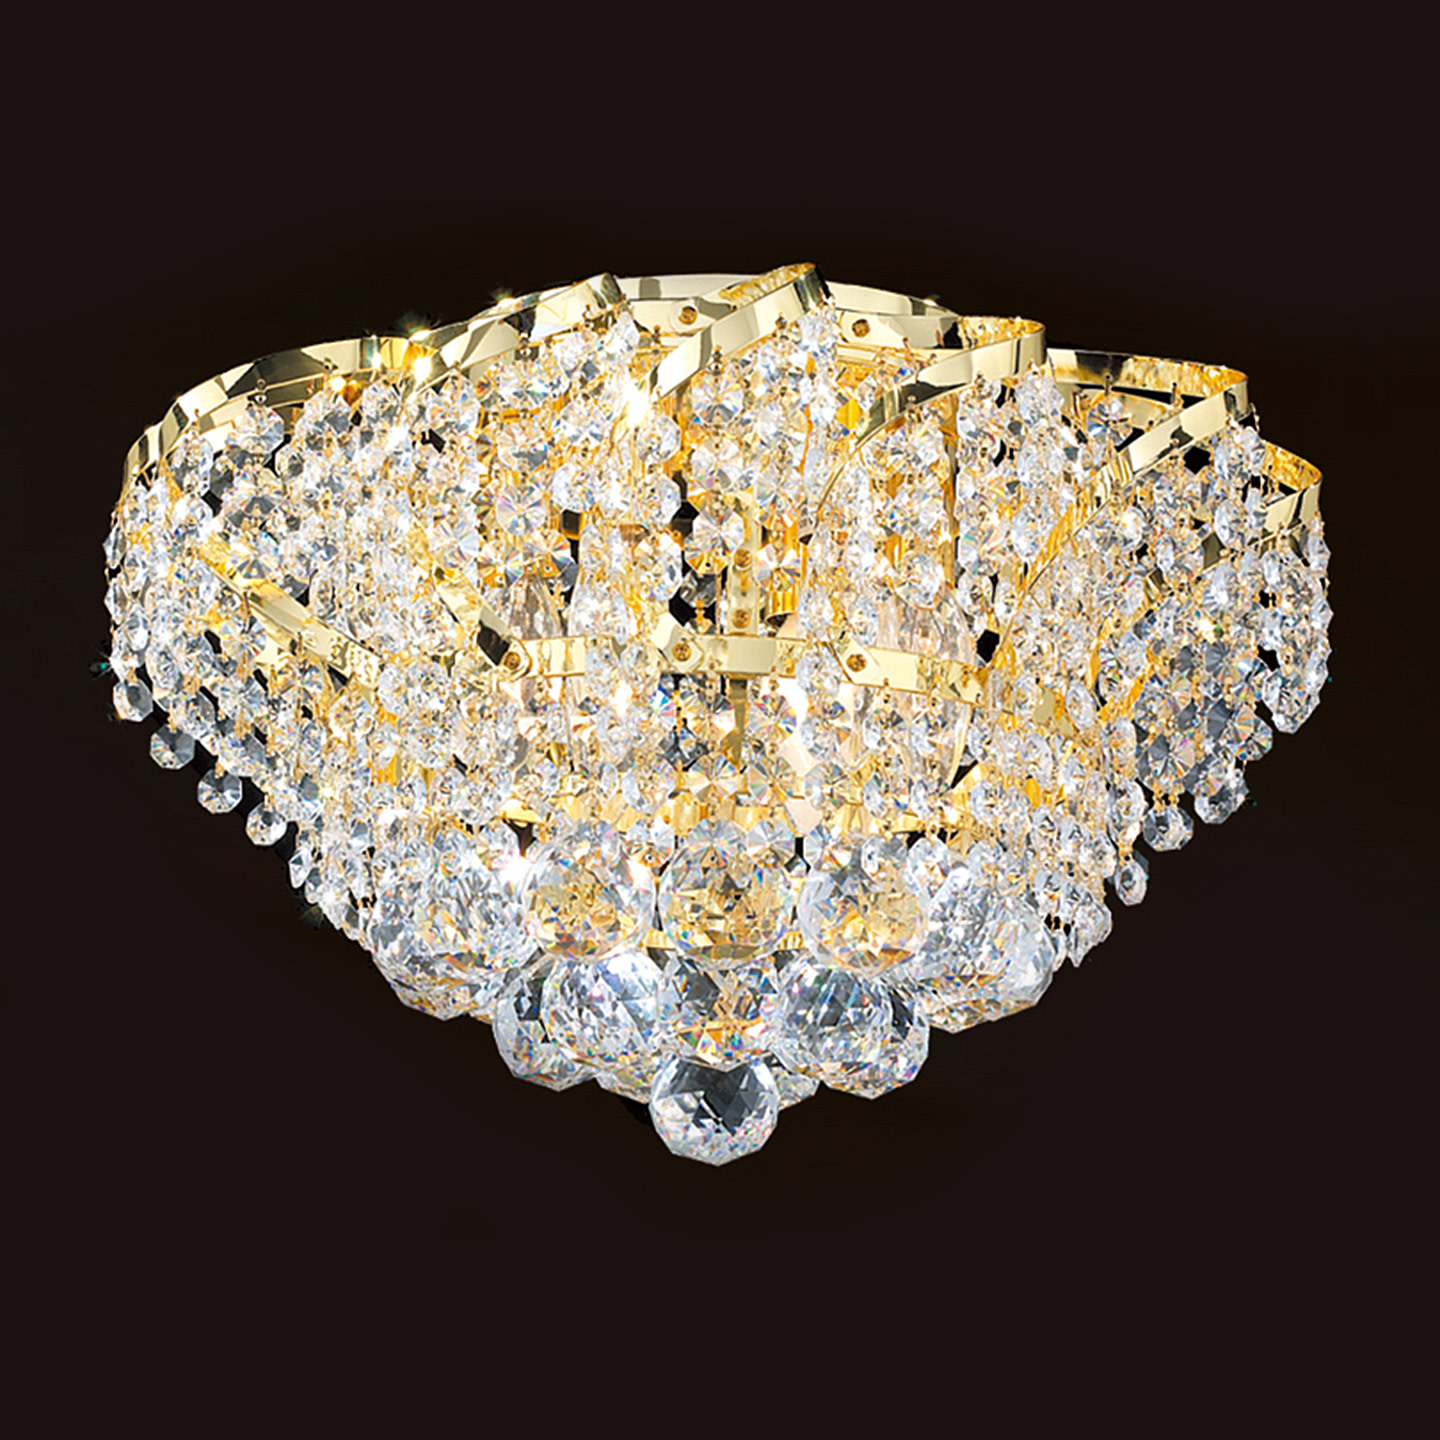 "Worldwide Lighting W33017C16 Empire 3-Light 16"" Flush Mount Ceiling Fixture in Chrome with Clear Crystals"